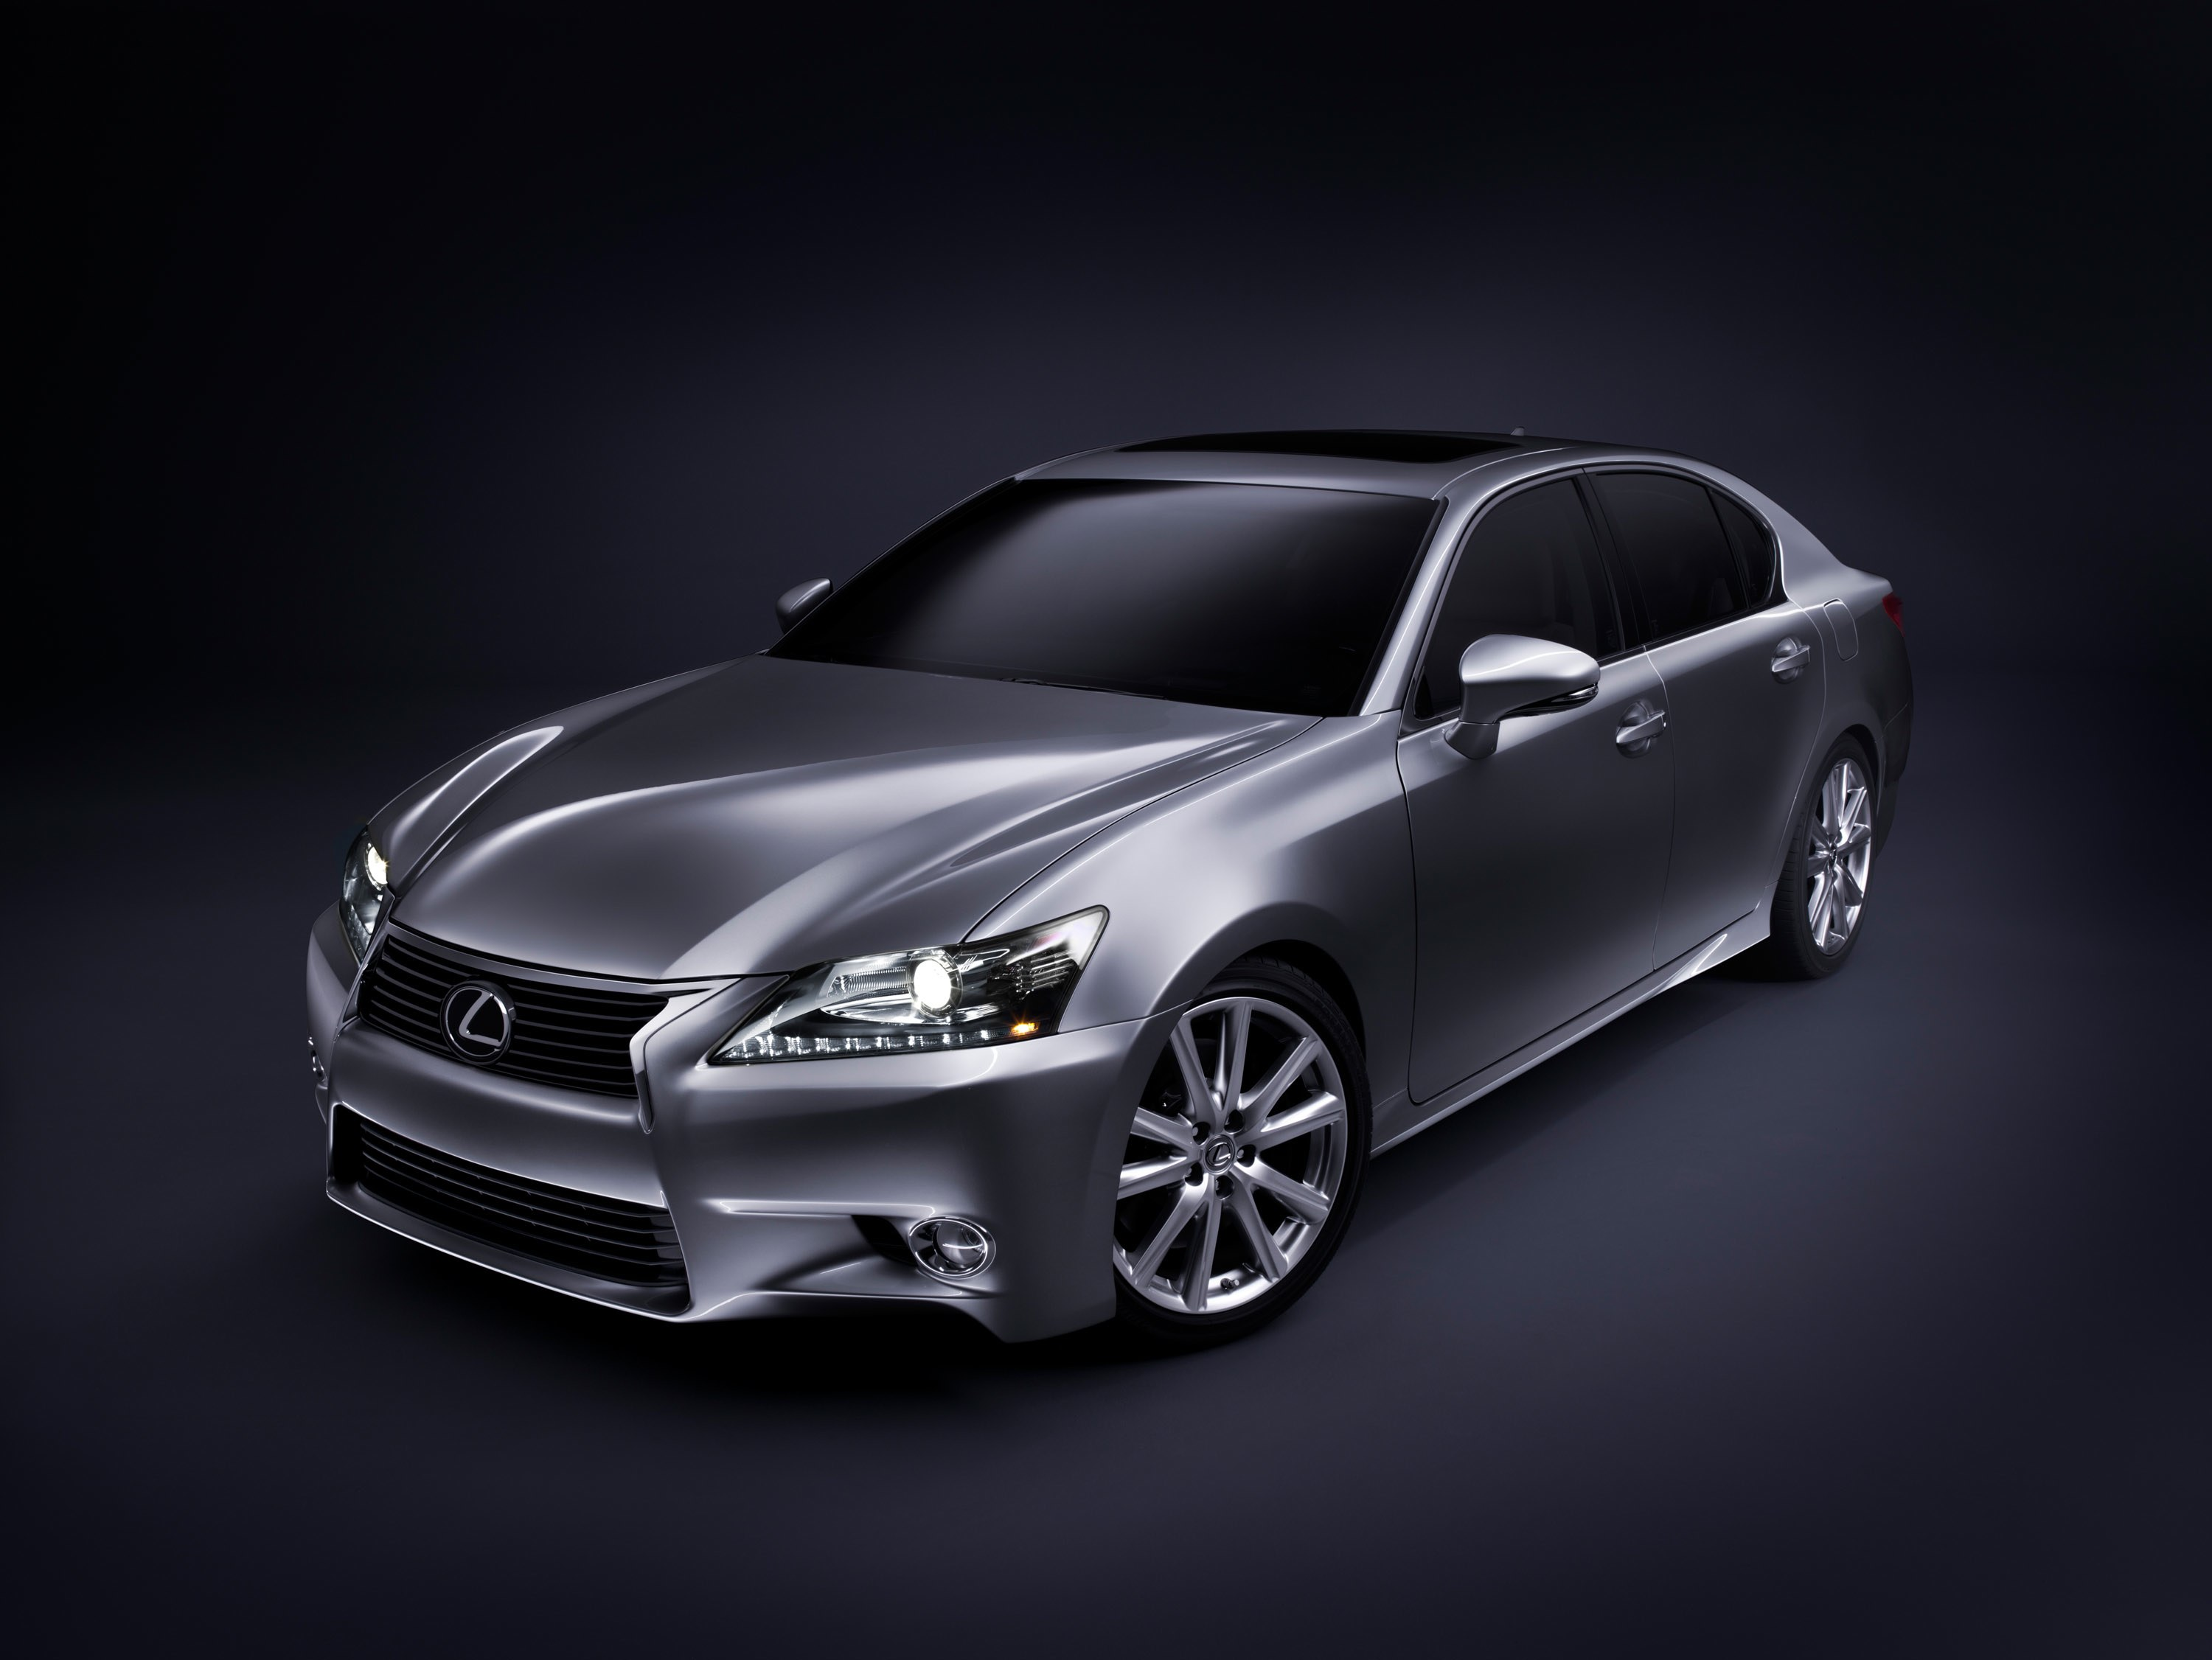 Lexus IS 350 #17